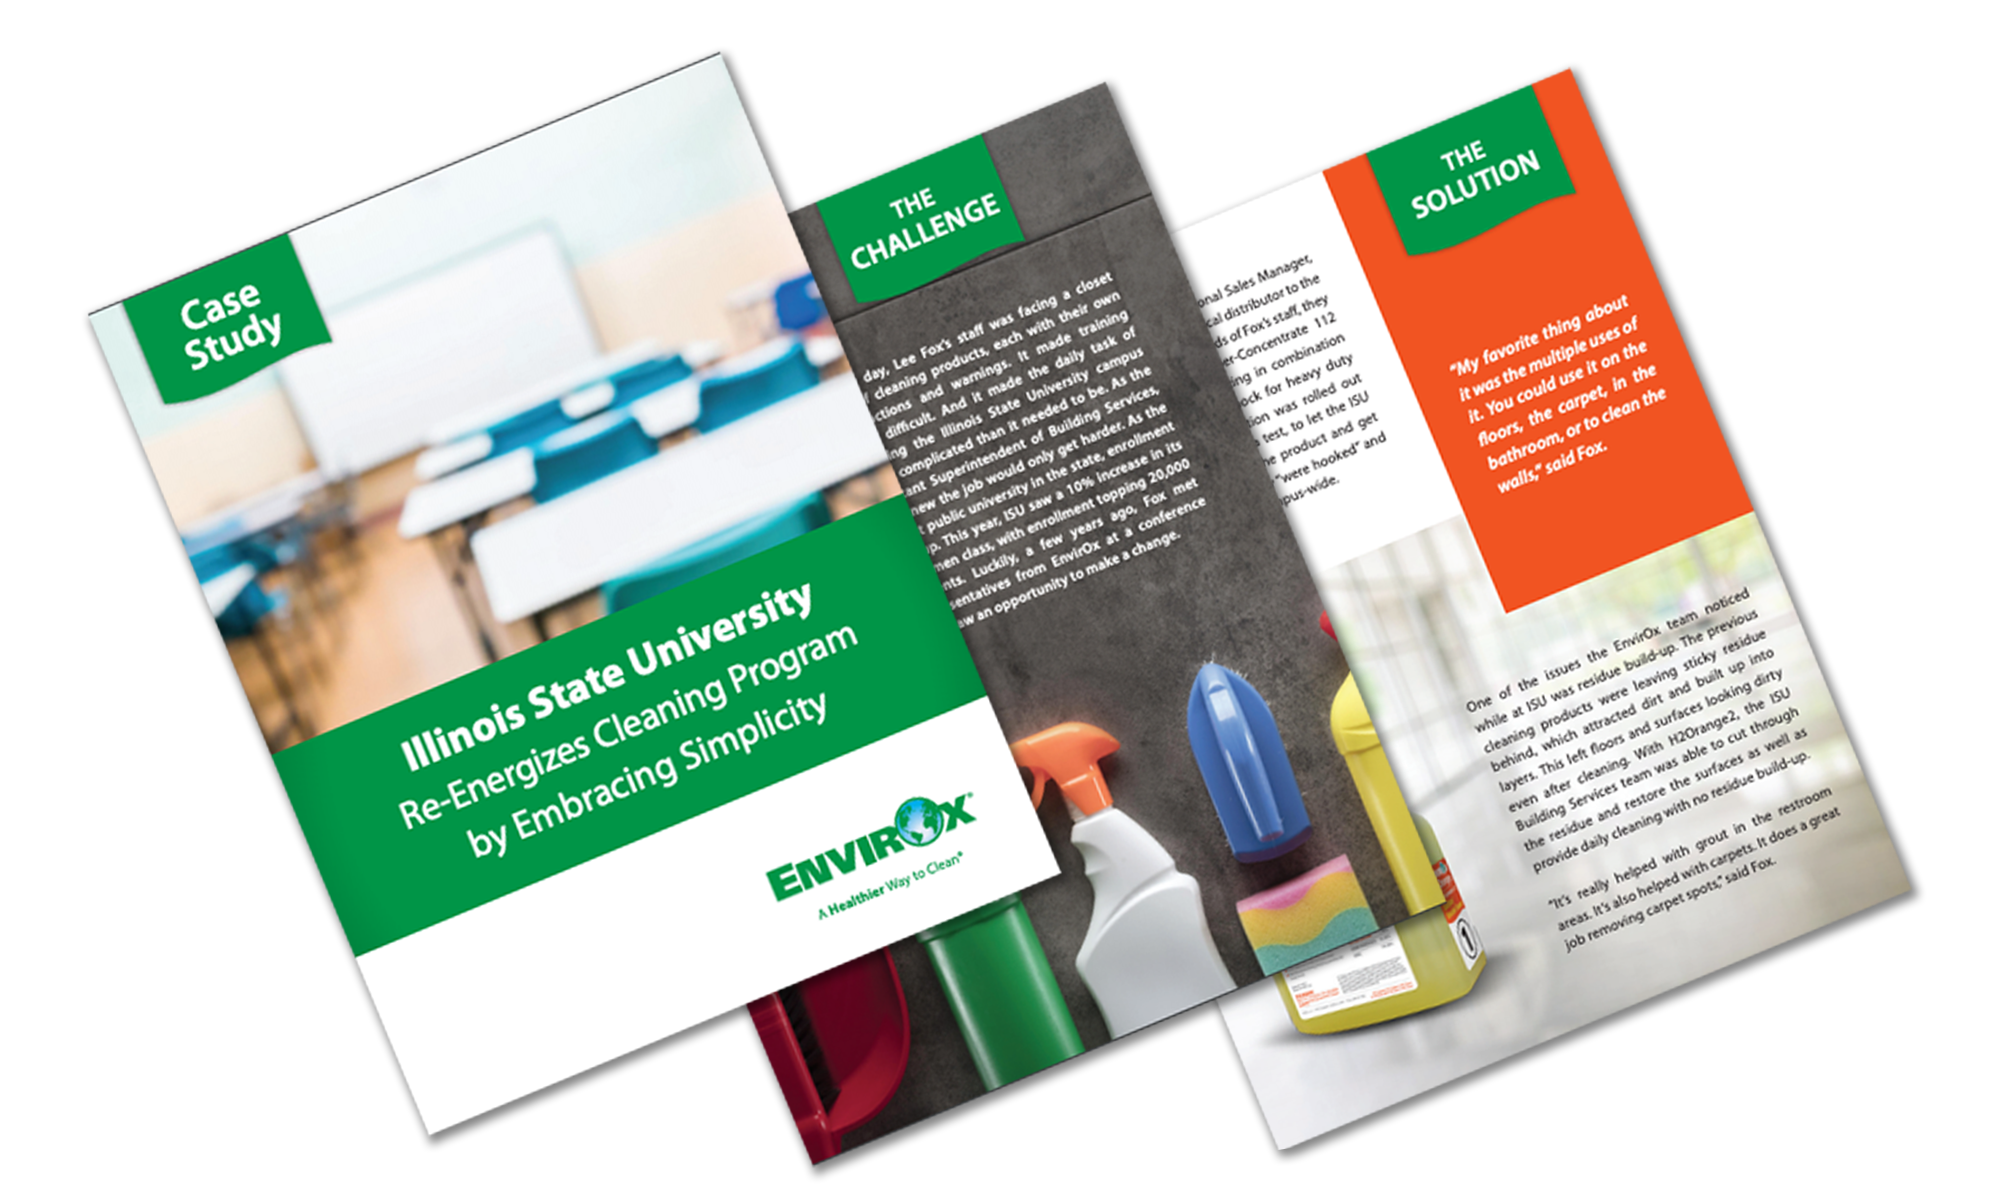 Case Study Imagery